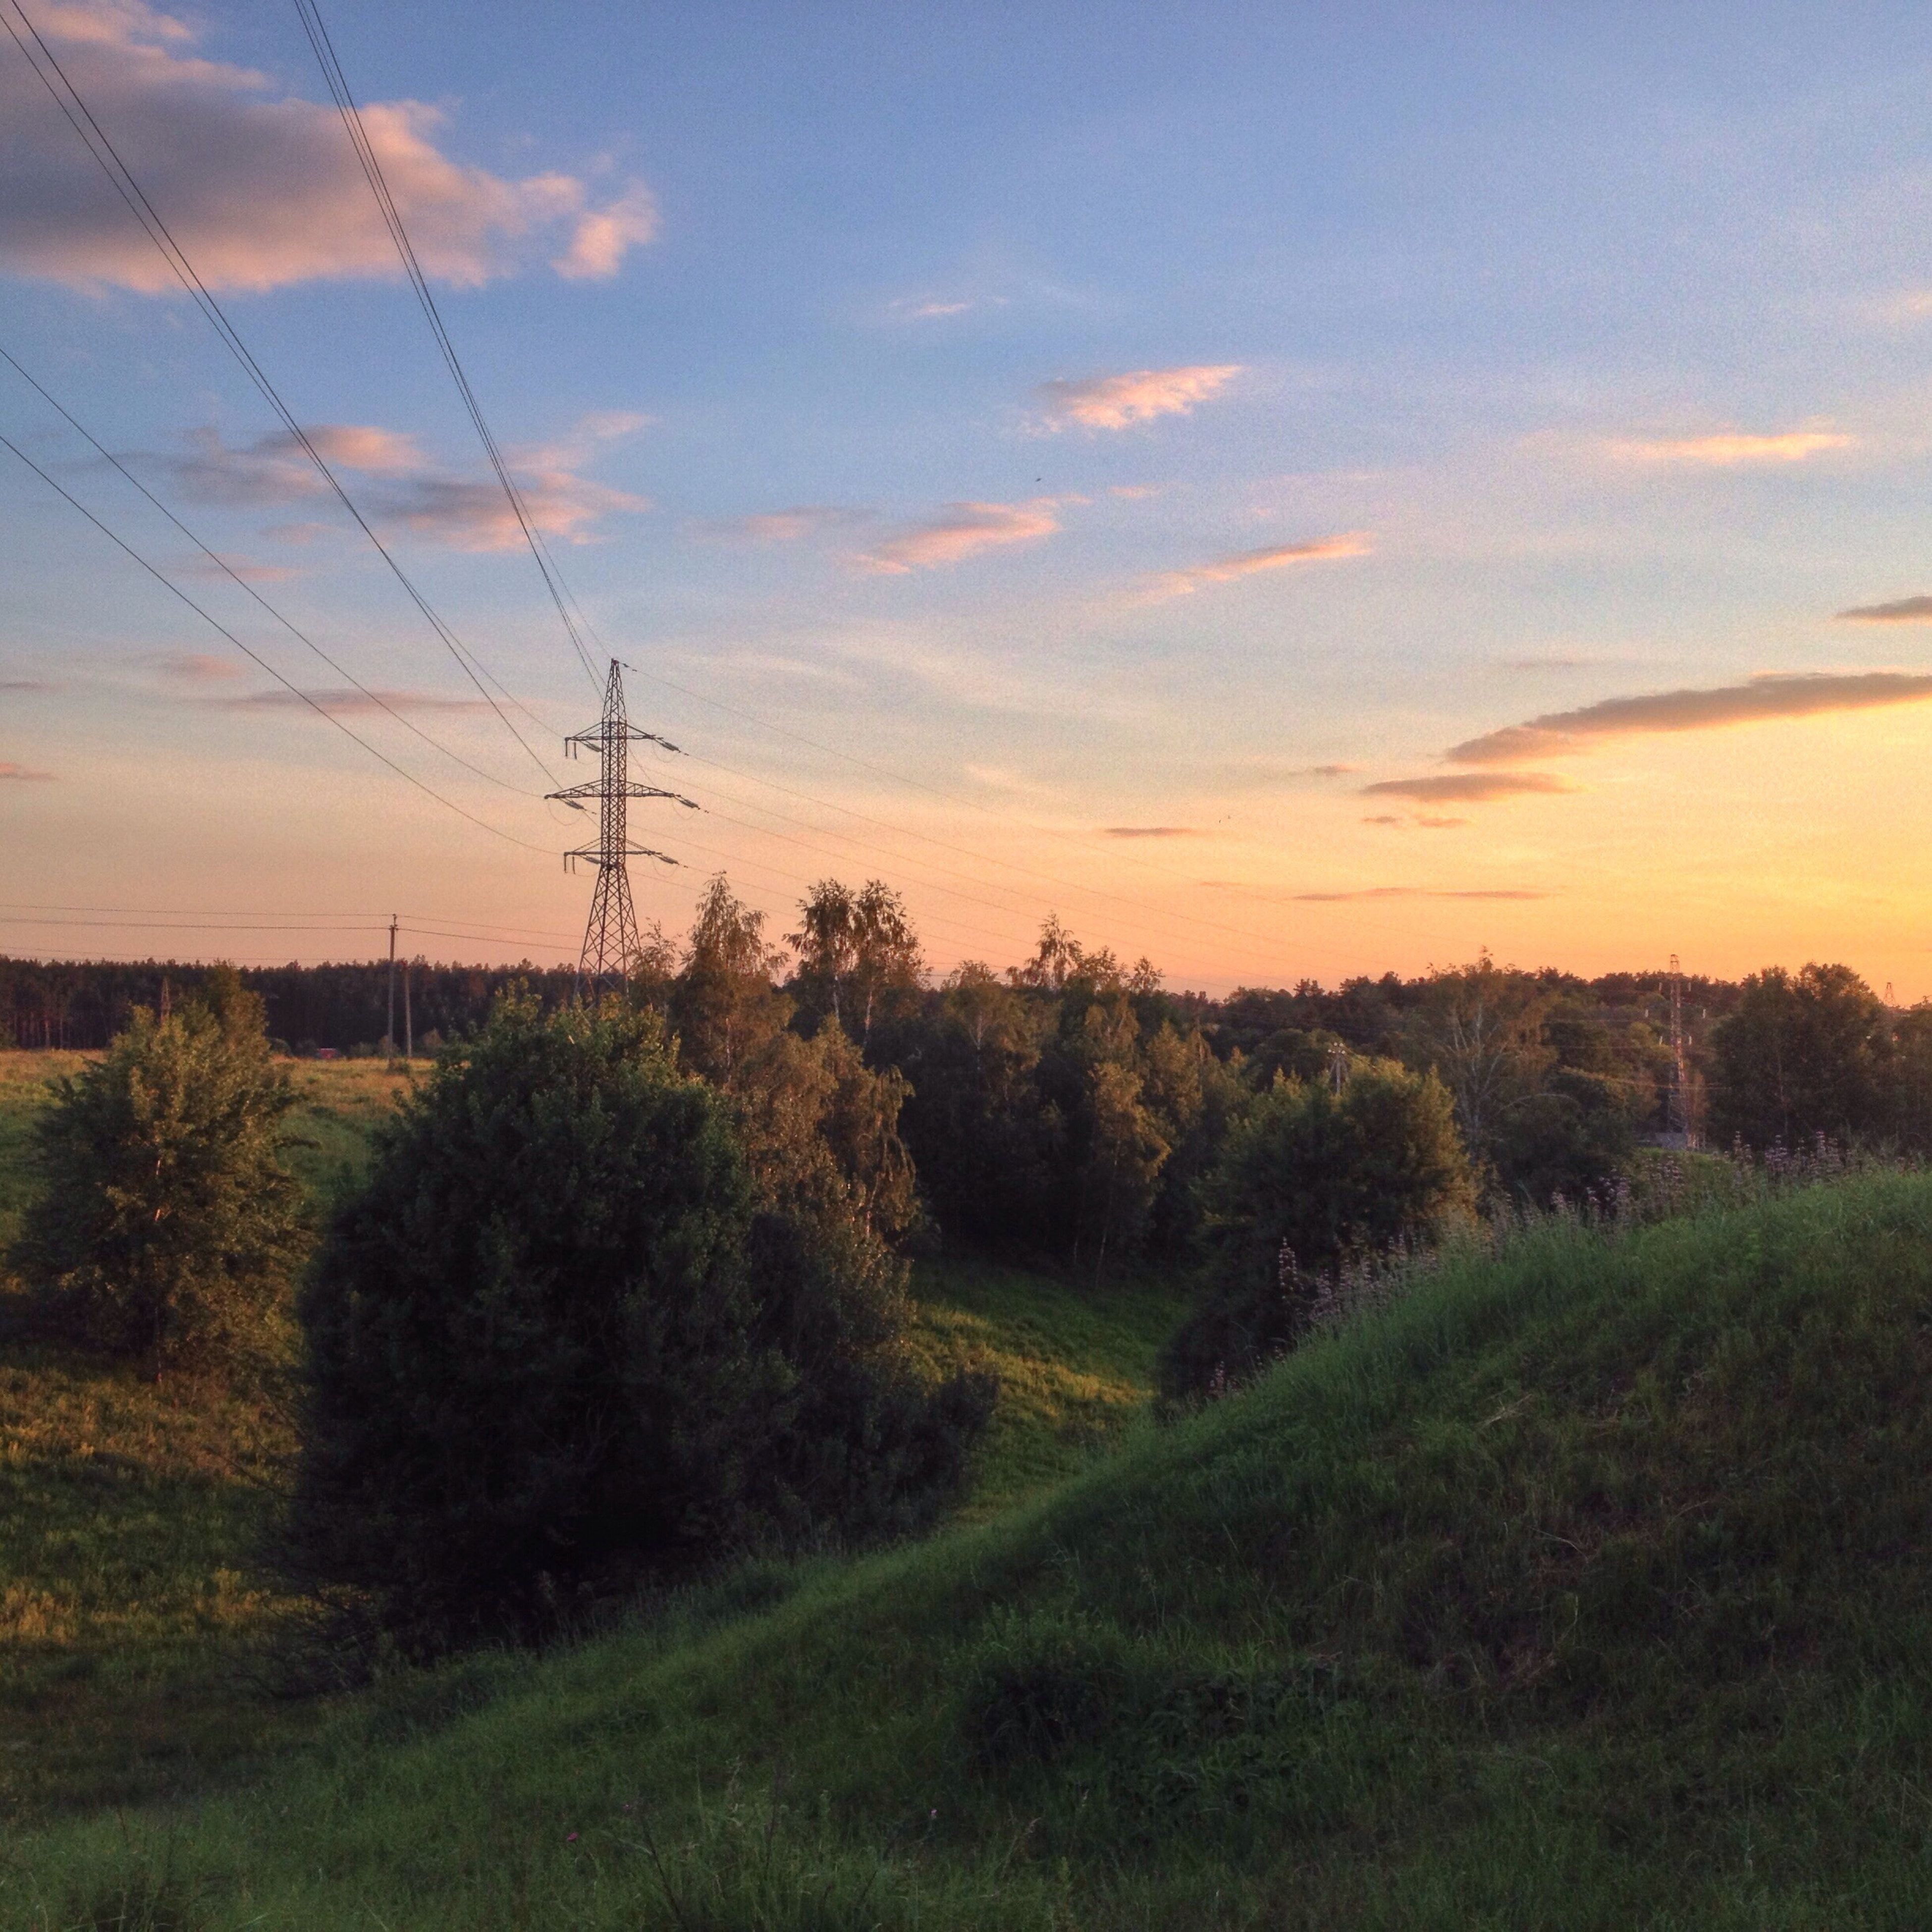 sky, electricity pylon, sunset, power line, landscape, tranquility, tranquil scene, field, tree, electricity, scenics, beauty in nature, nature, cloud - sky, growth, power supply, grass, connection, plant, cable